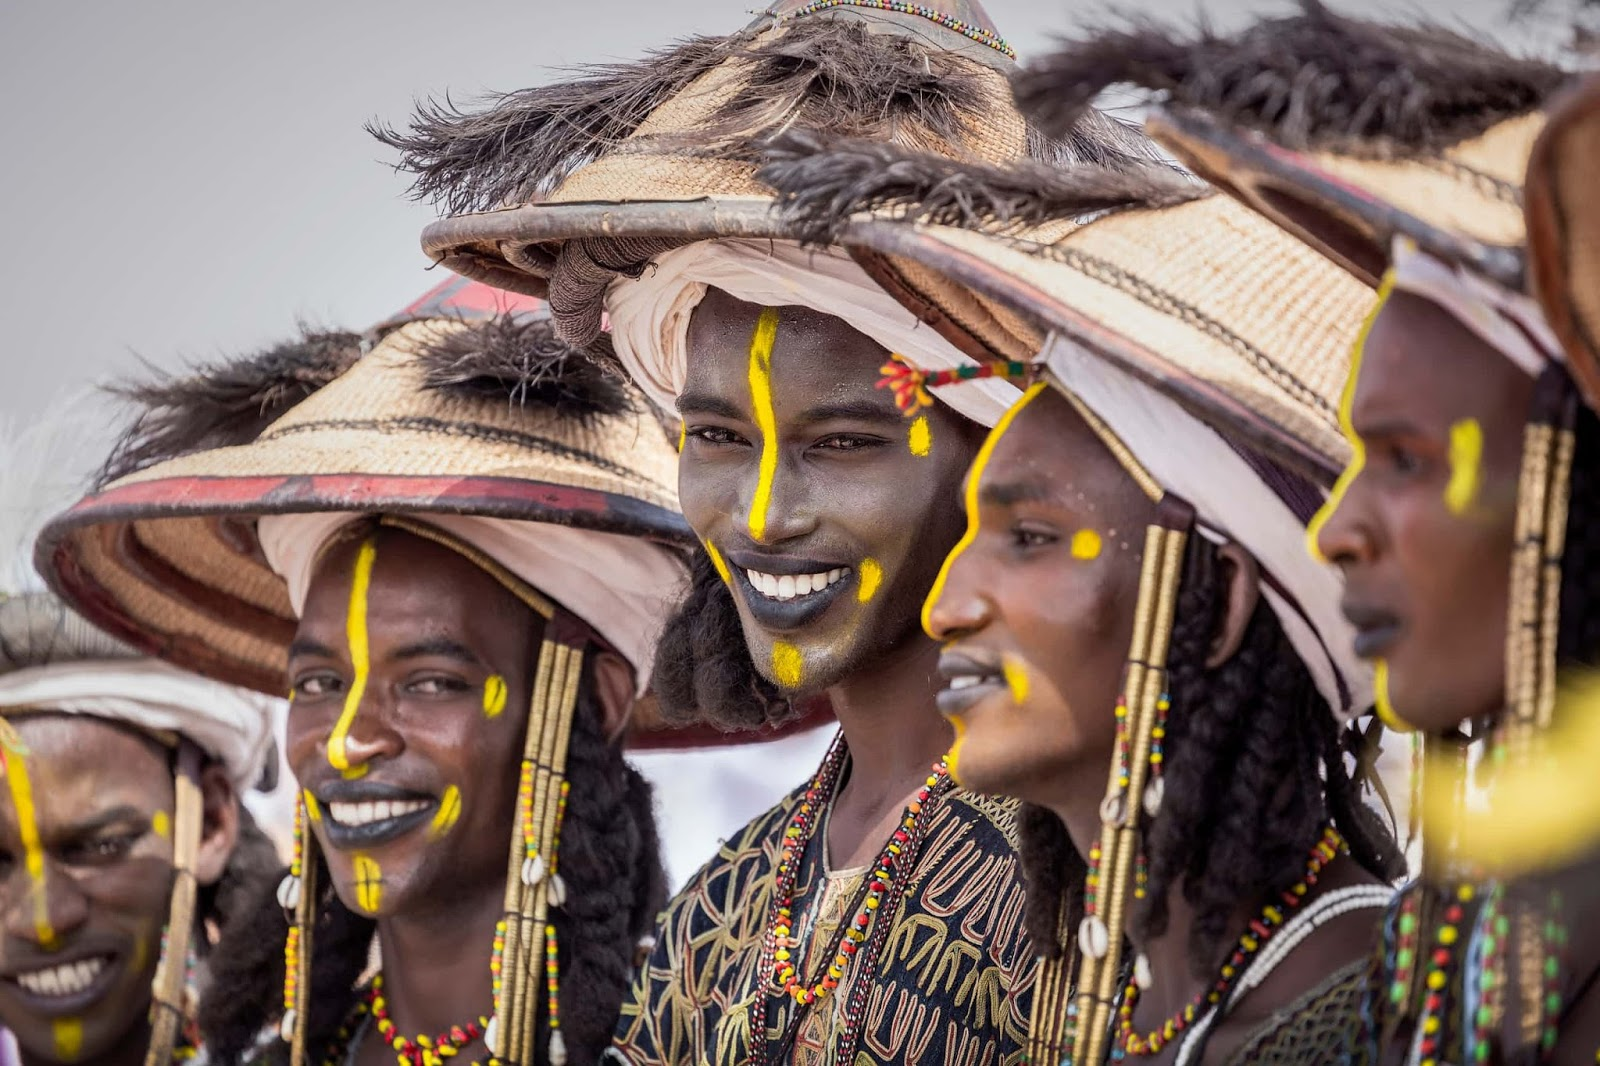 25 Of The Most Intriguing Pictures Of 2017 - Fulani youths take part in a male beauty contest